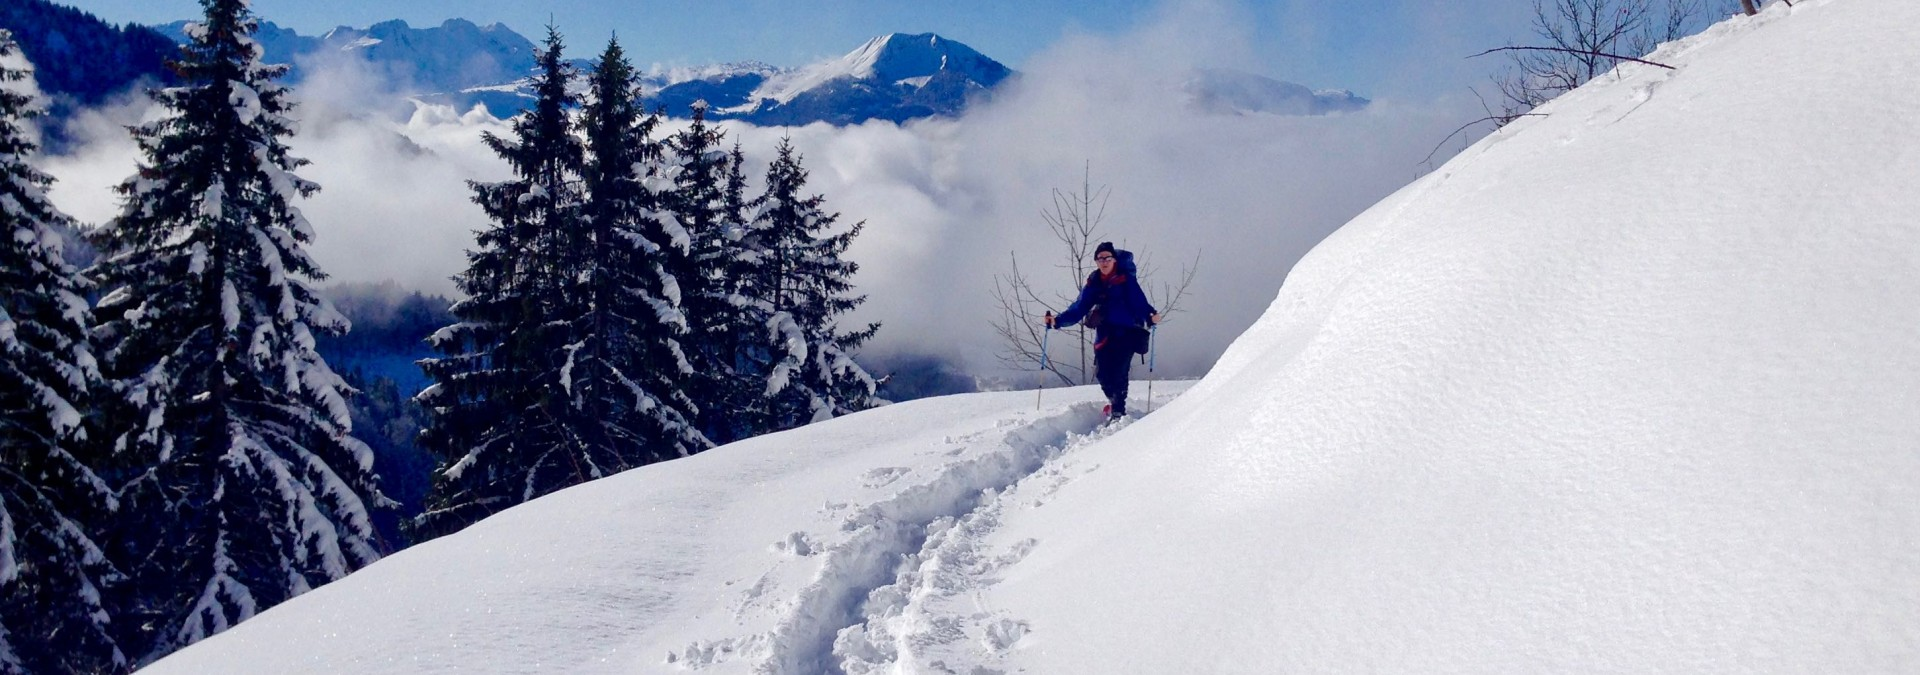 Traverse of the Chablais